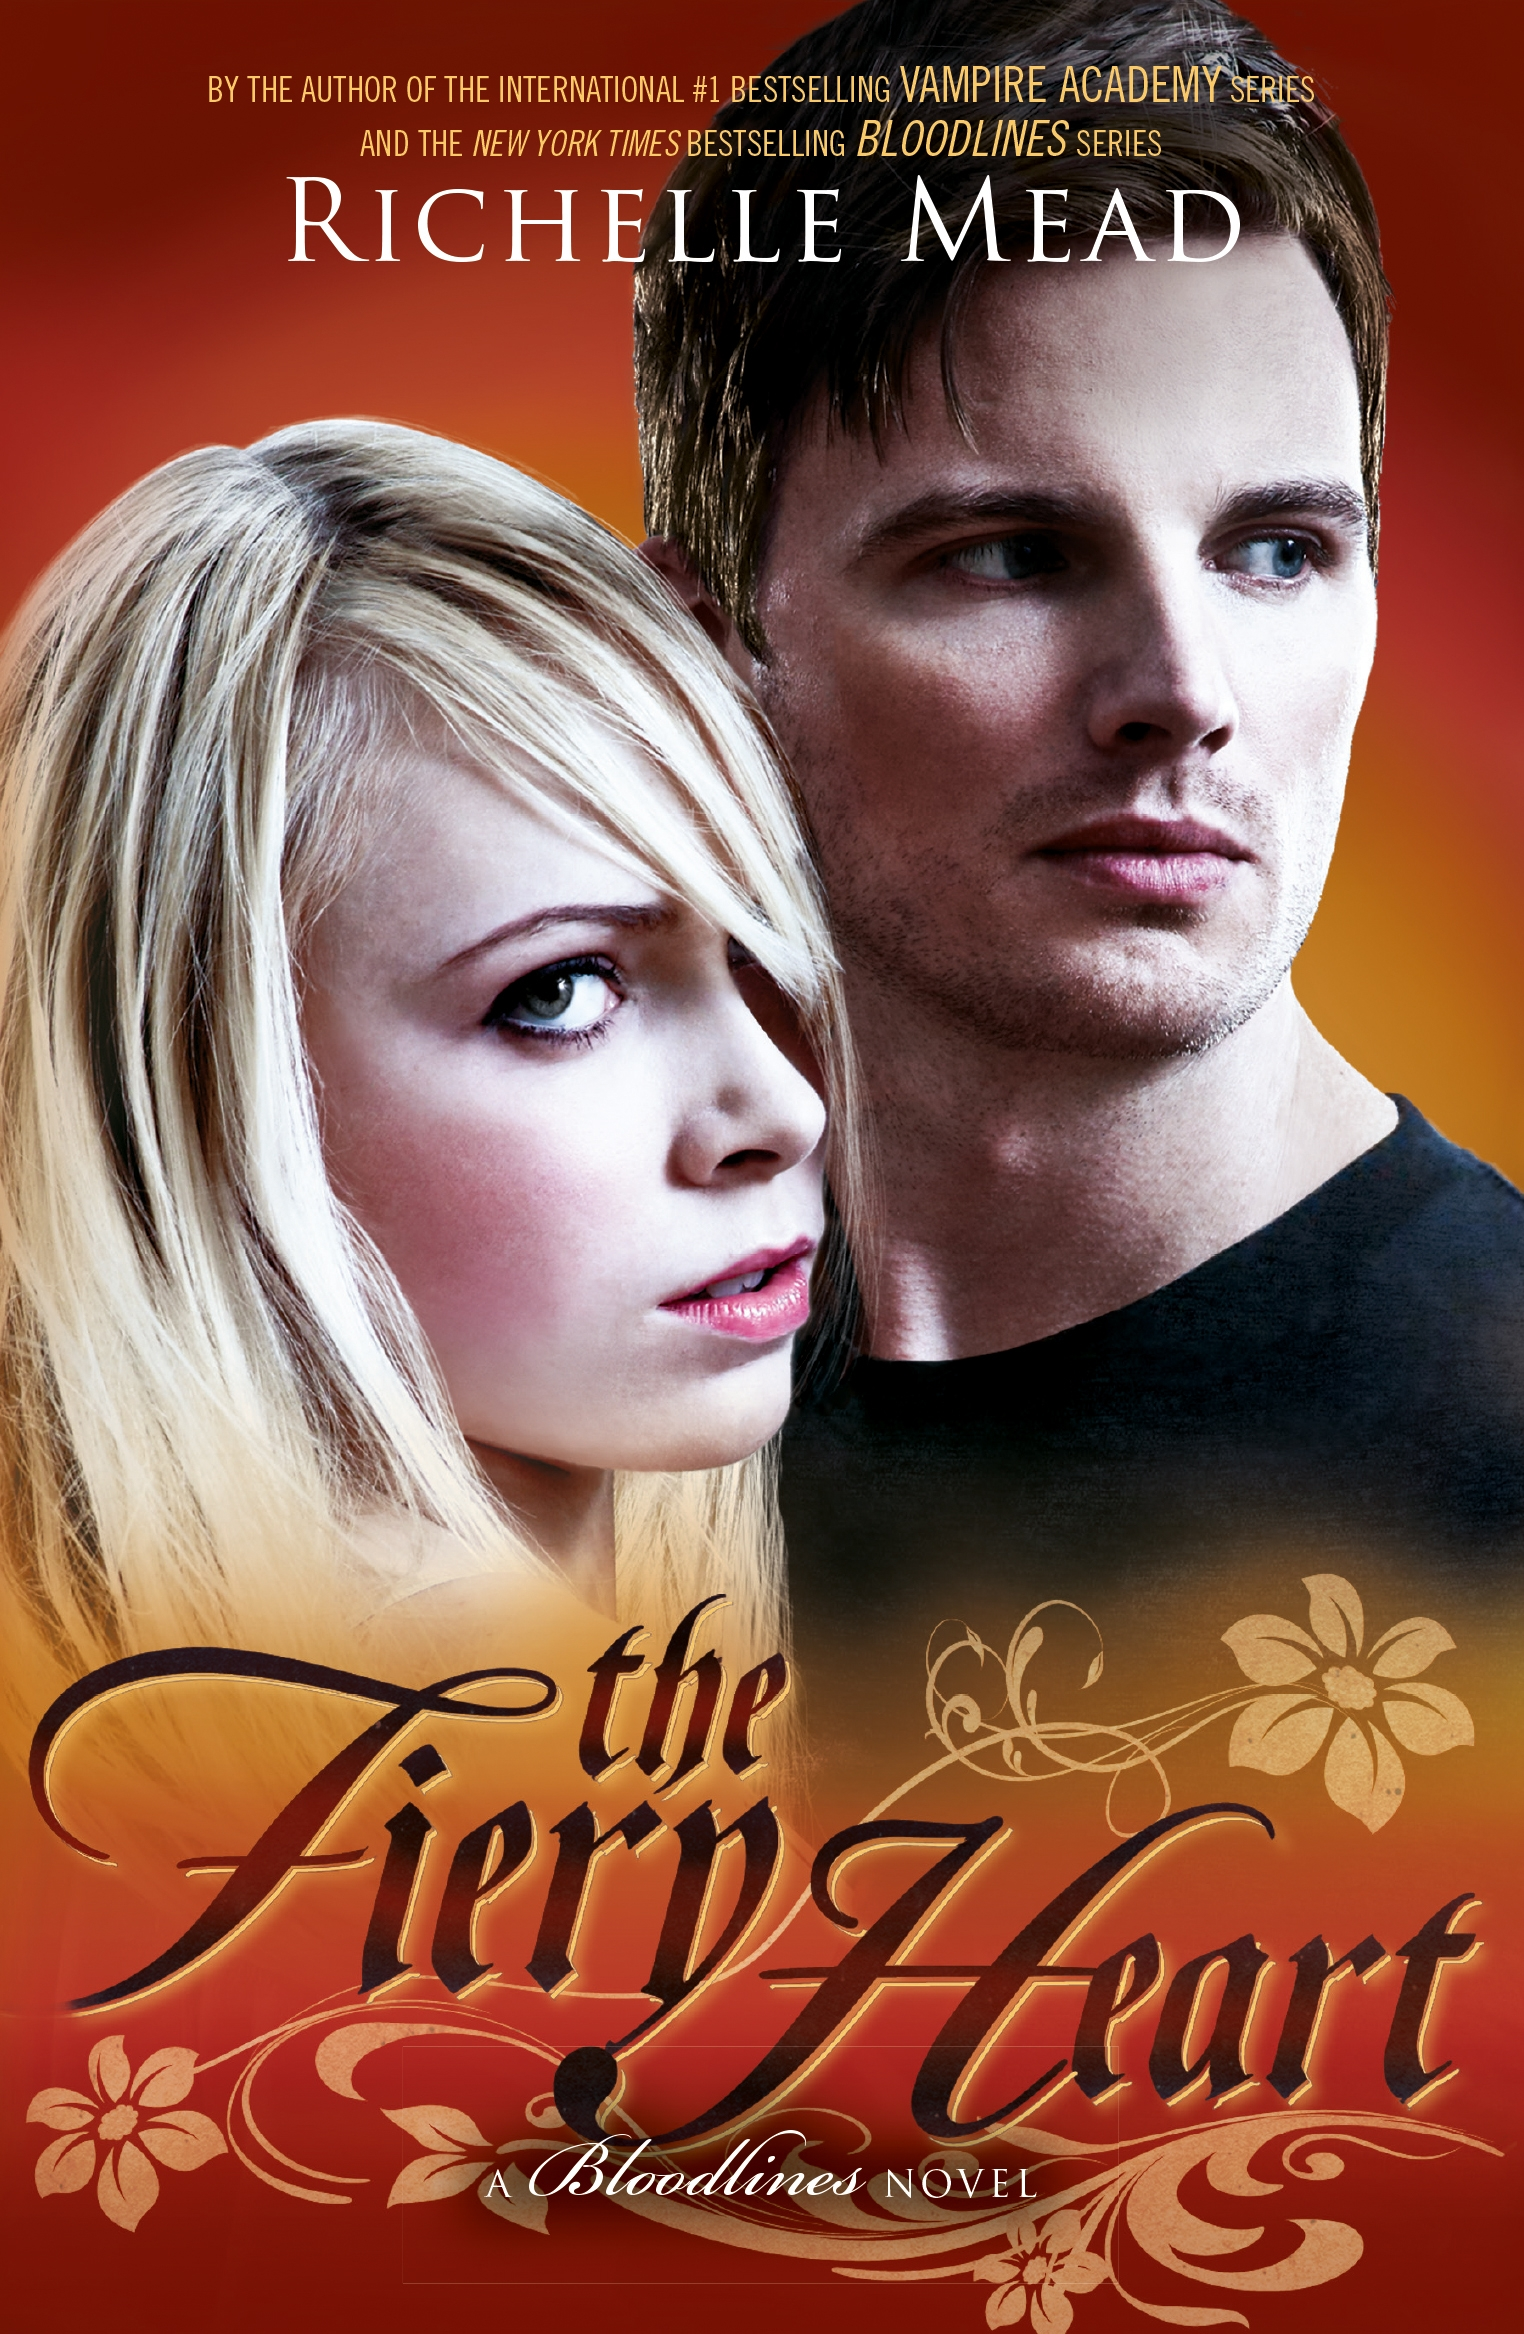 The fiery heart bloodlines book 4 by richelle mead penguin books hi res cover fandeluxe Gallery